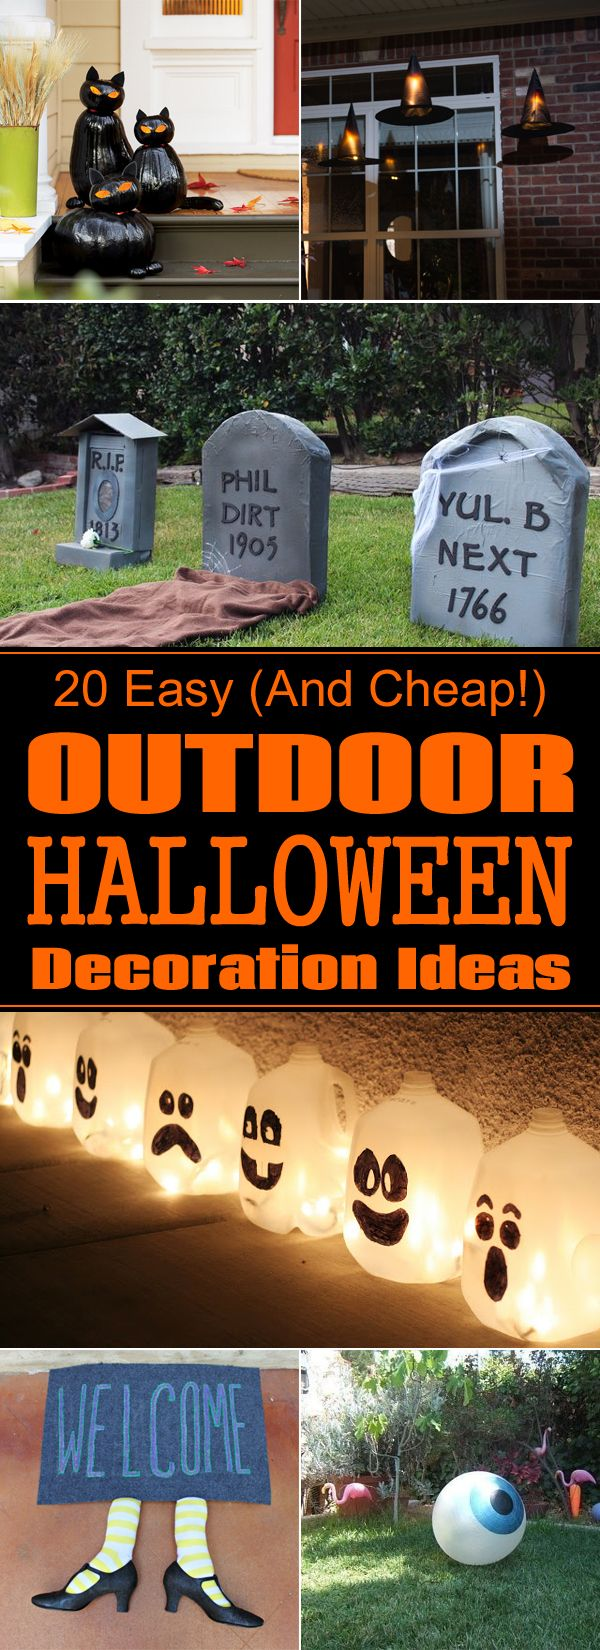 20 easy and cheap diy outdoor halloween decoration ideas - Cheap Halloween Decoration Ideas Outdoor